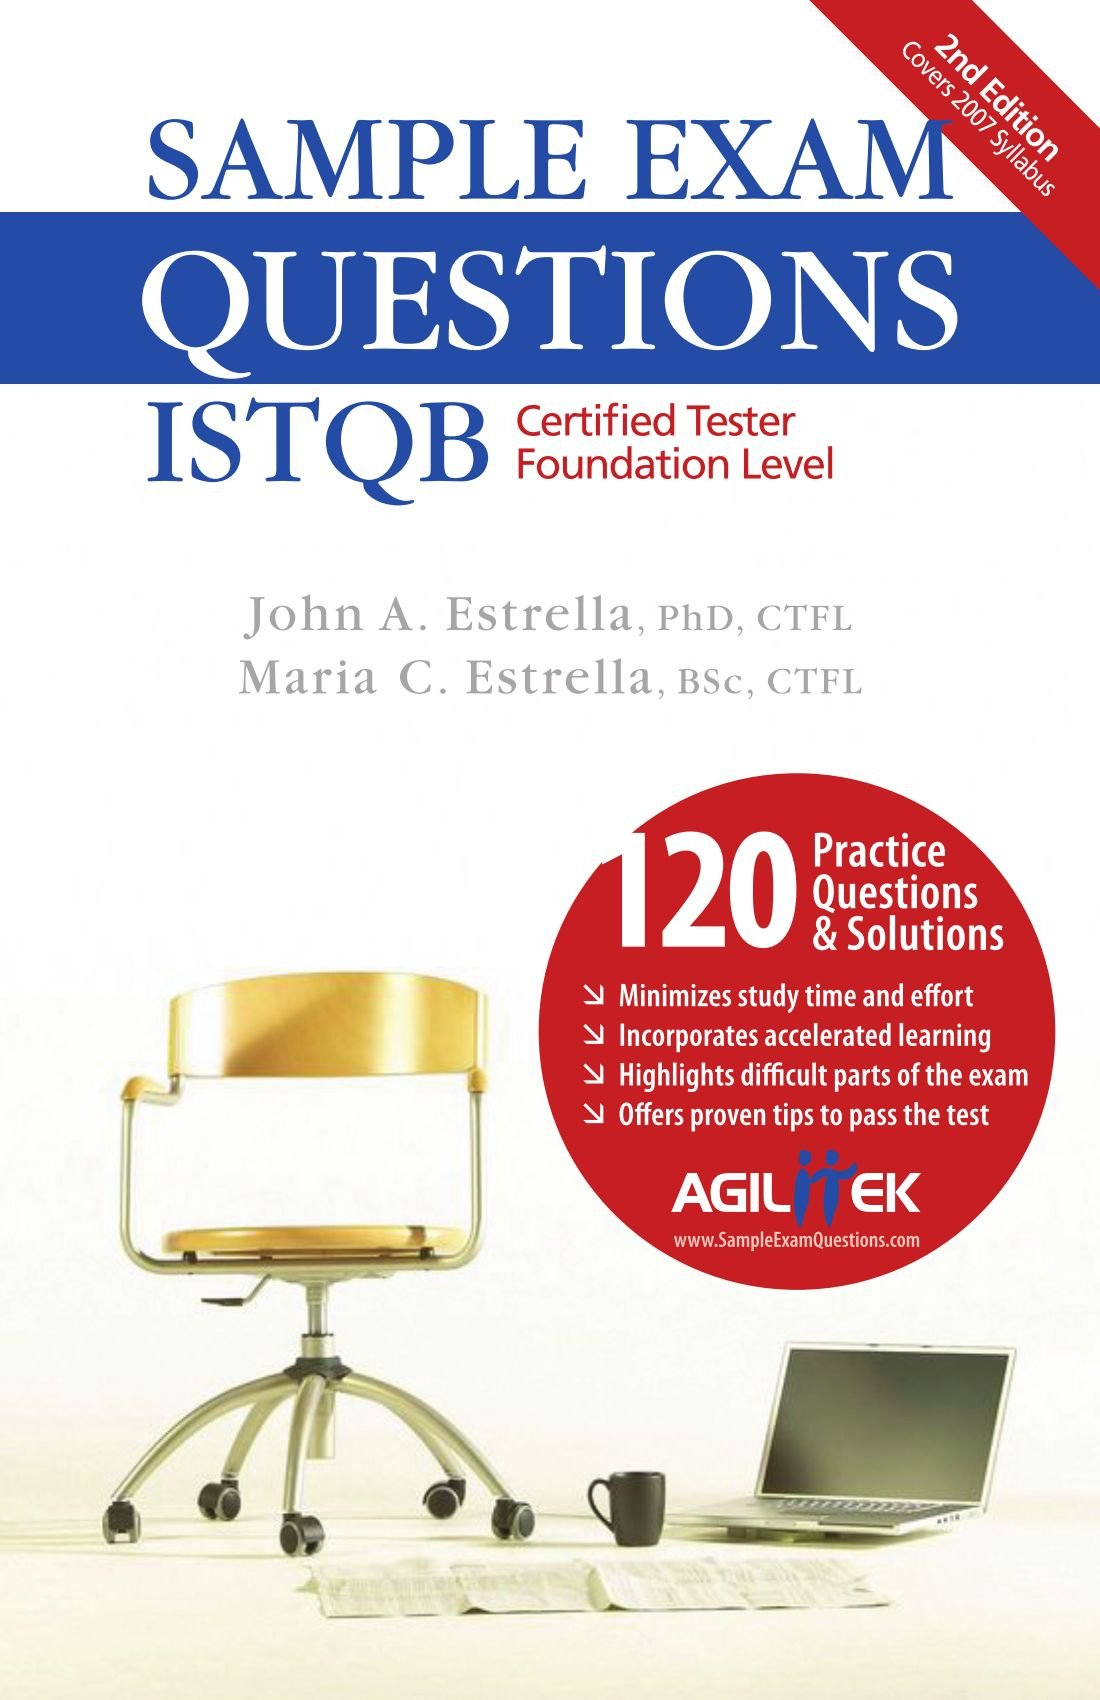 Sample exam questions istqb certified tester foundation level sample exam questions istqb certified tester foundation level amazon phd ctfl john a estrella 9781425131333 books 1betcityfo Image collections